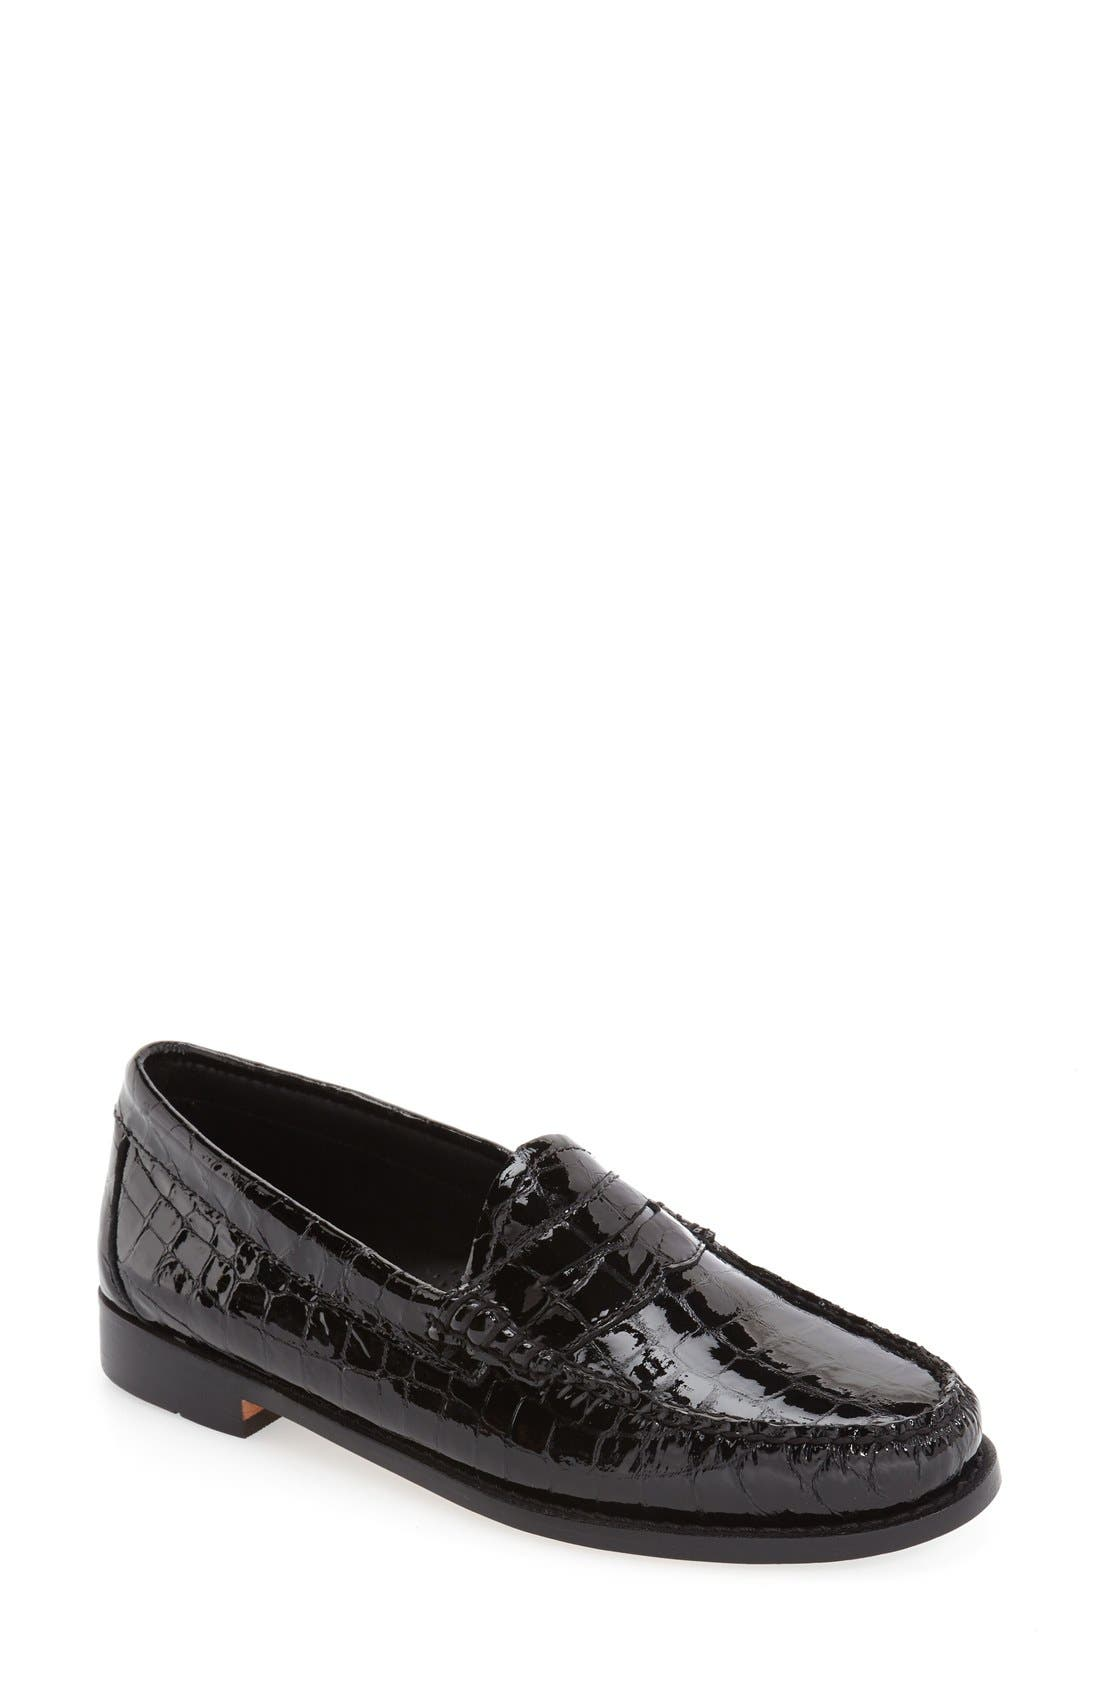 'Whitney' Loafer,                             Main thumbnail 22, color,